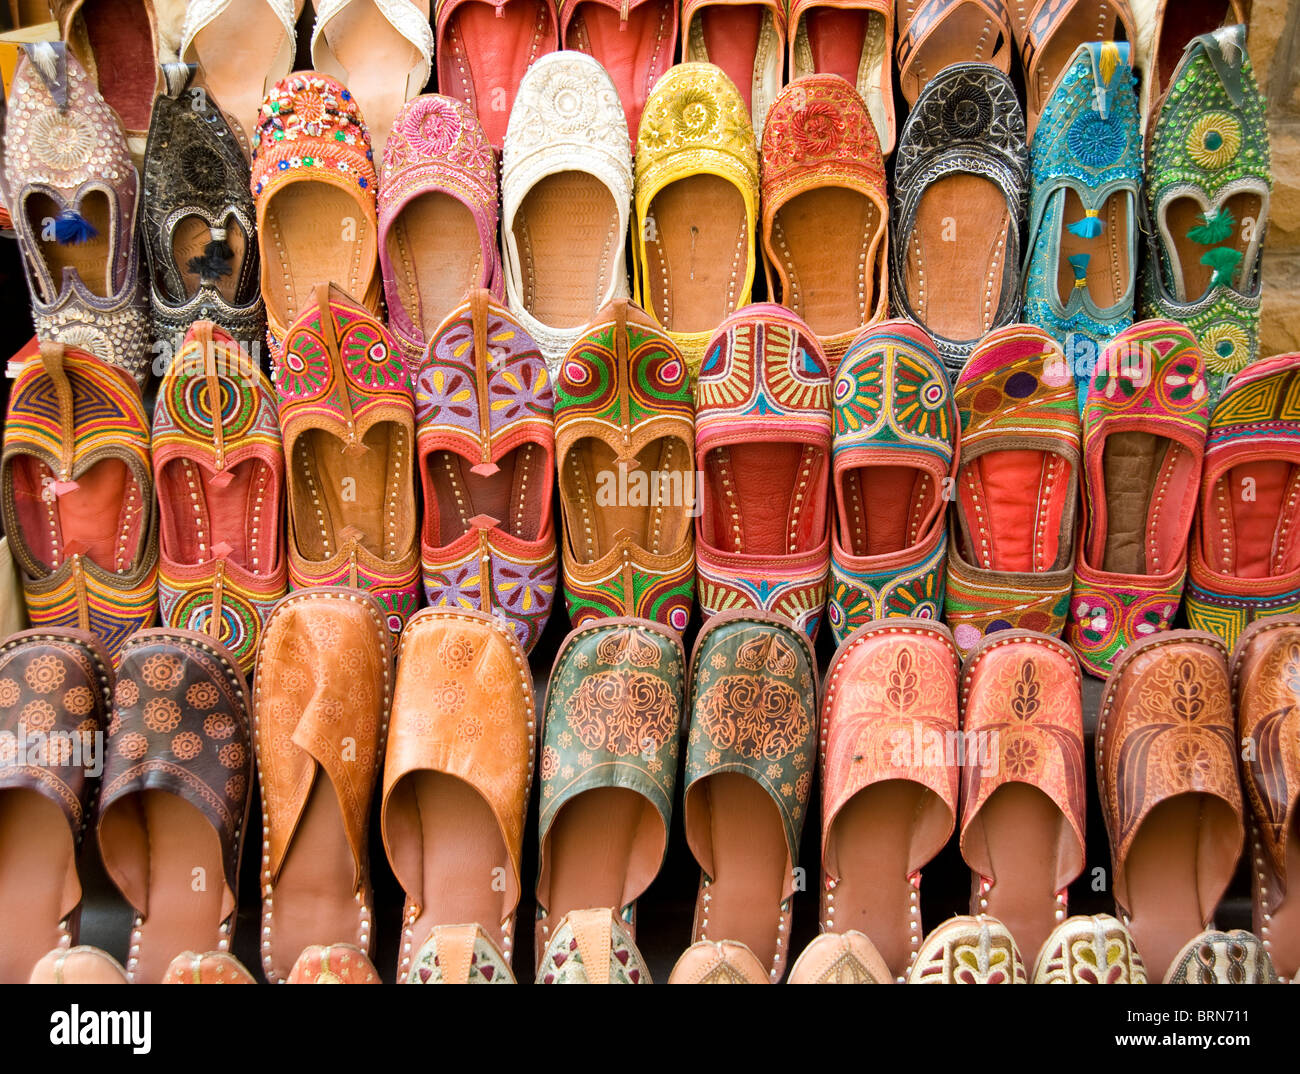 aad6c545c0fd Traditional Rajasthani shoes on sale in Jaisalmer Rajasthan - Stock Image